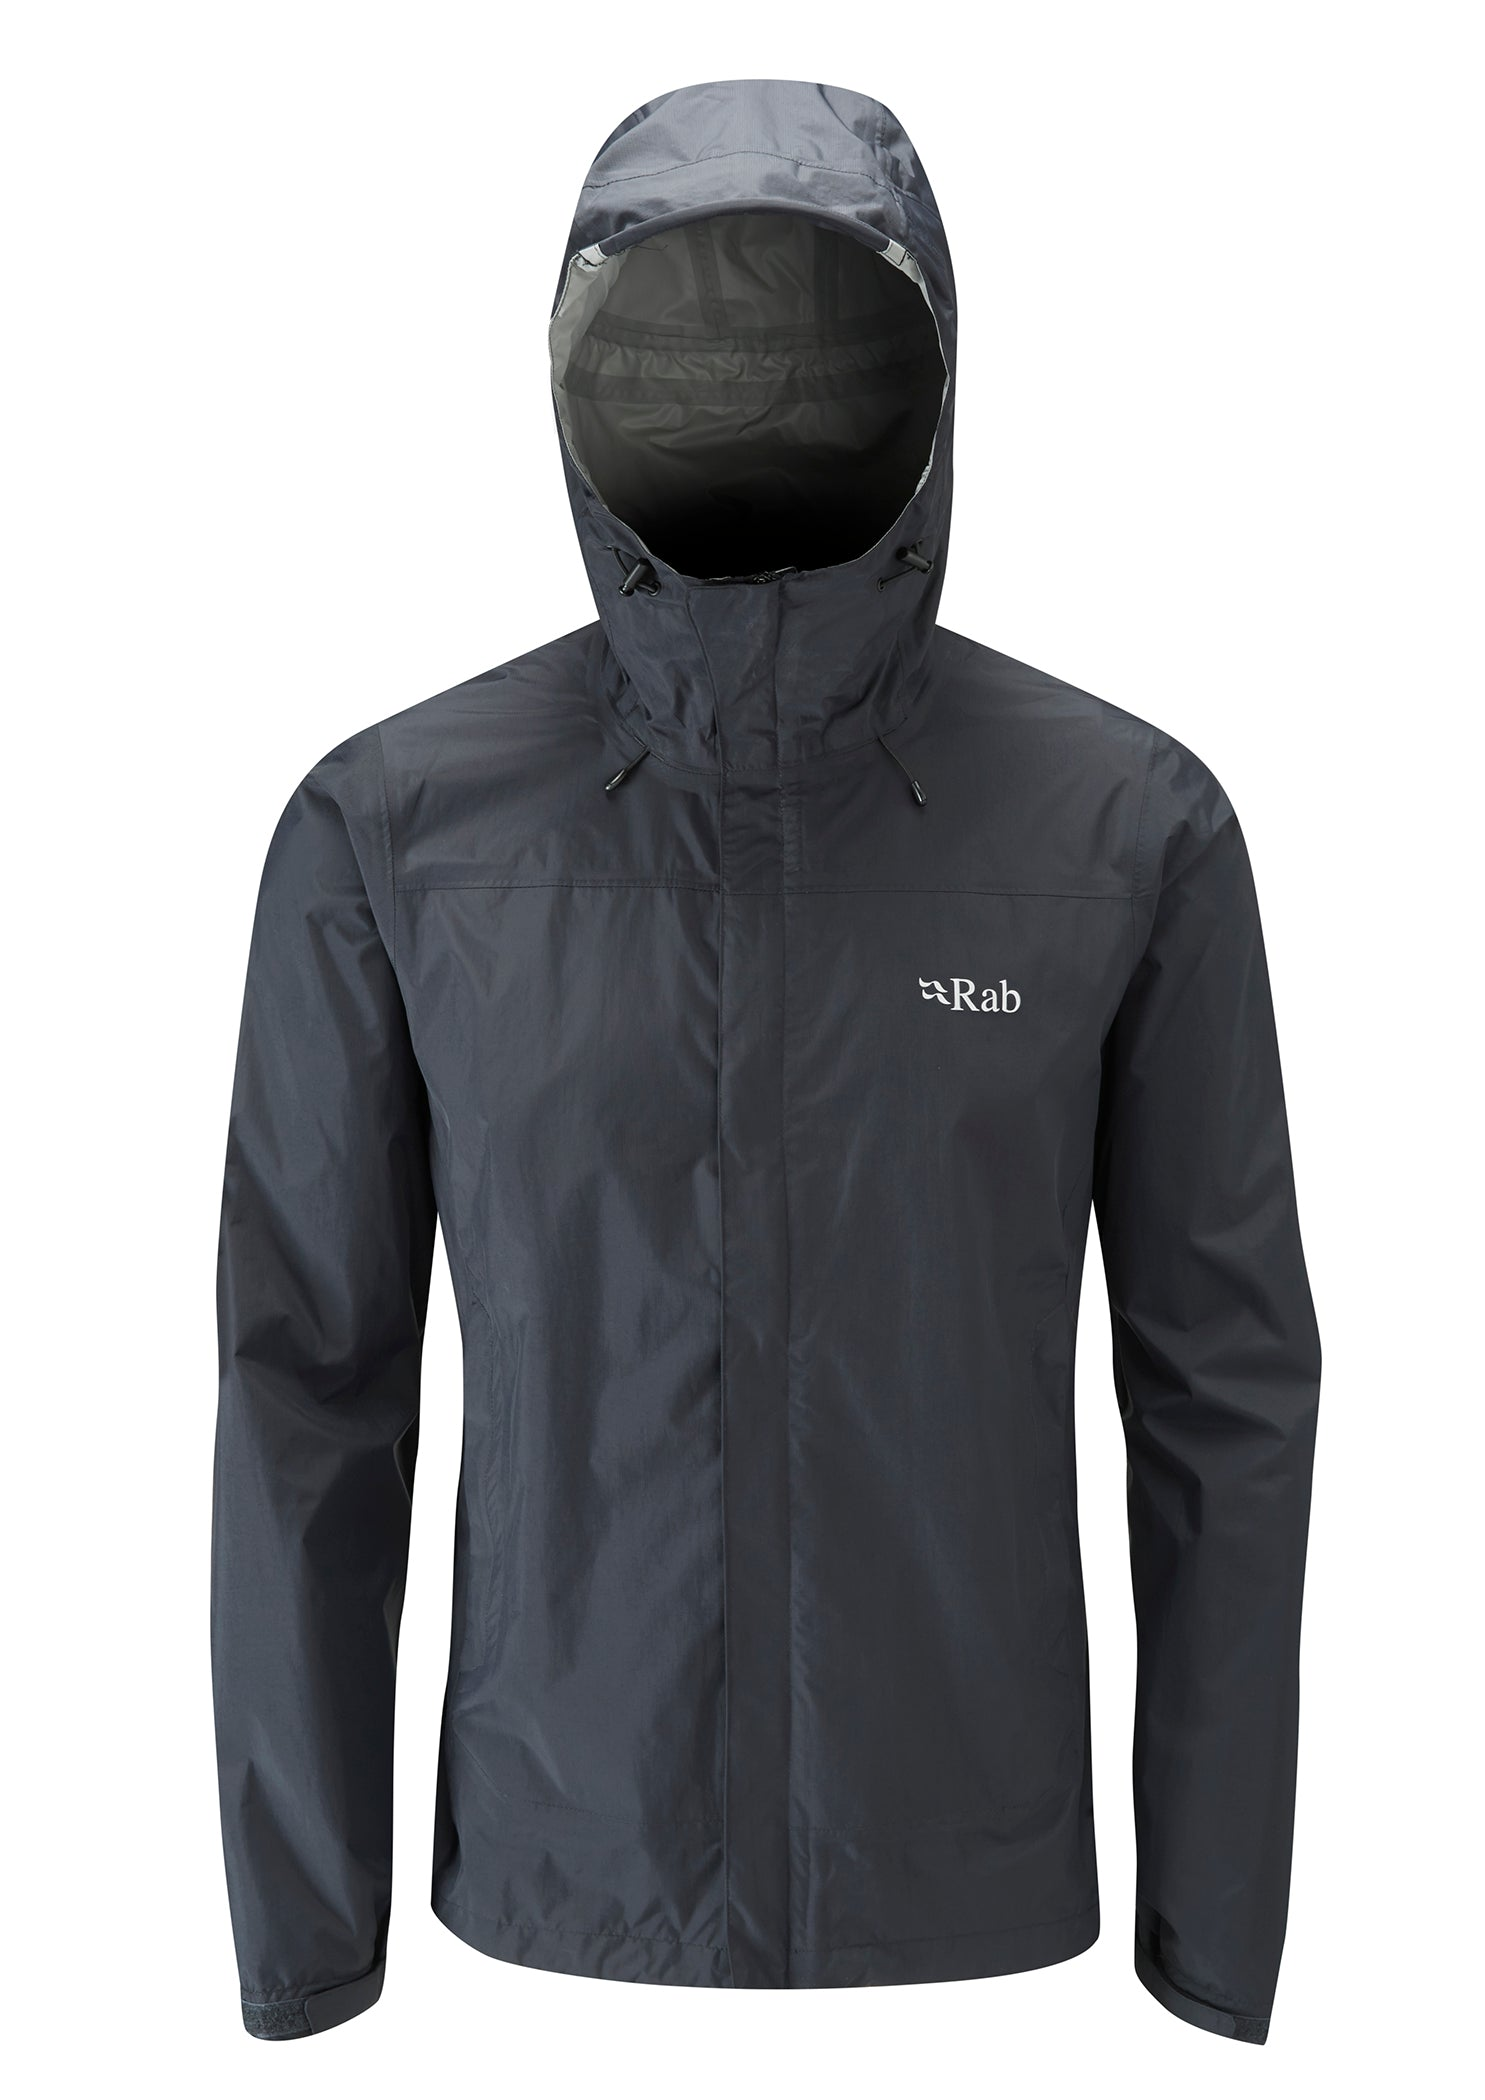 Rab Downpour Waterproof Jacket for Men in Black